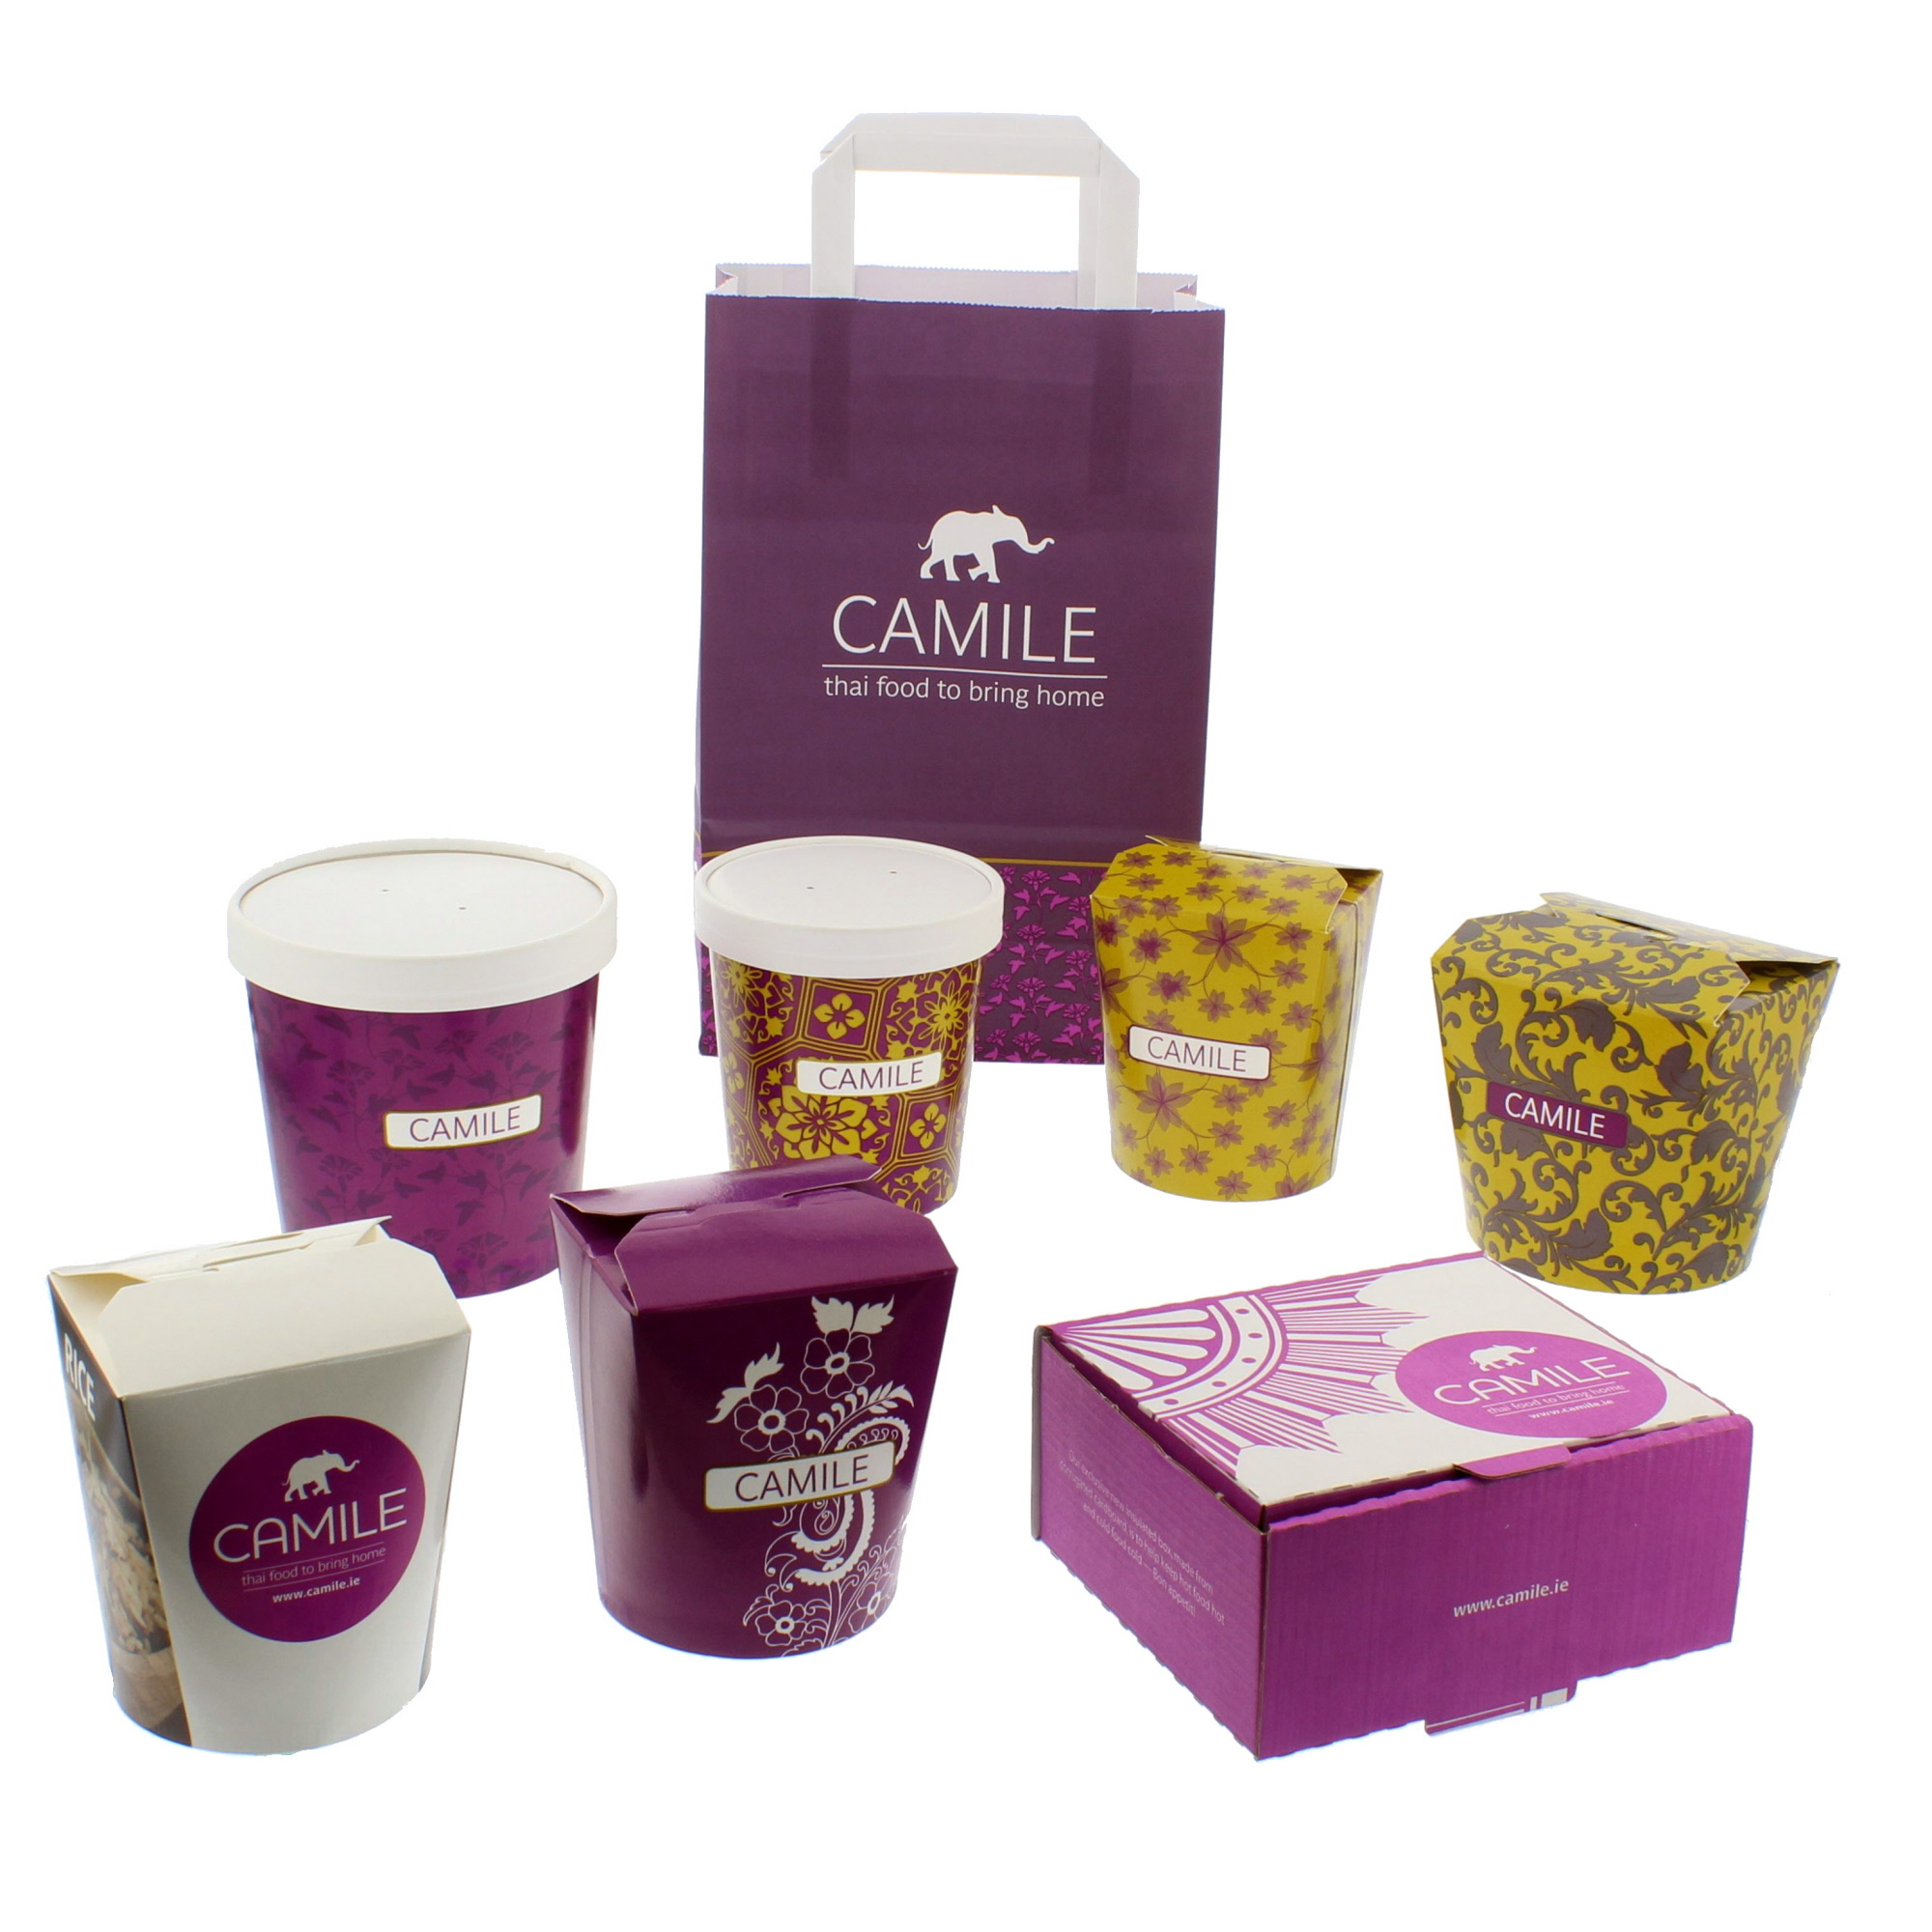 Camile Thai Packaging Collection